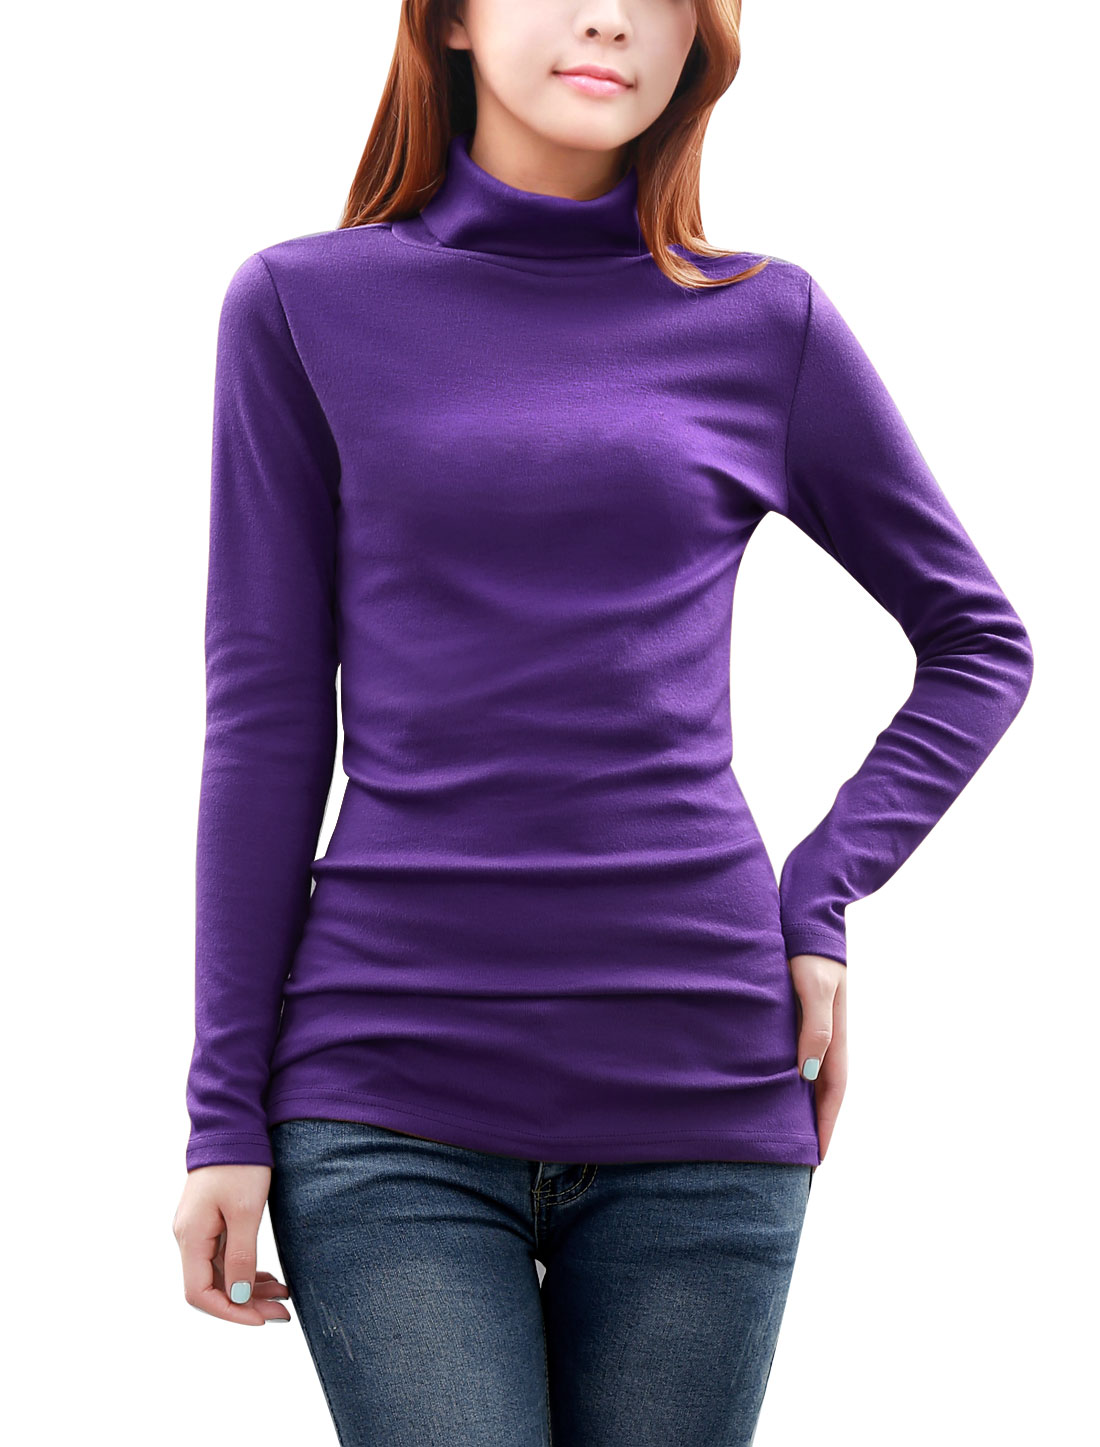 Allegra K Ladies Long Sleeve Turtle Neck Stretch Autumn Blouse Purple S